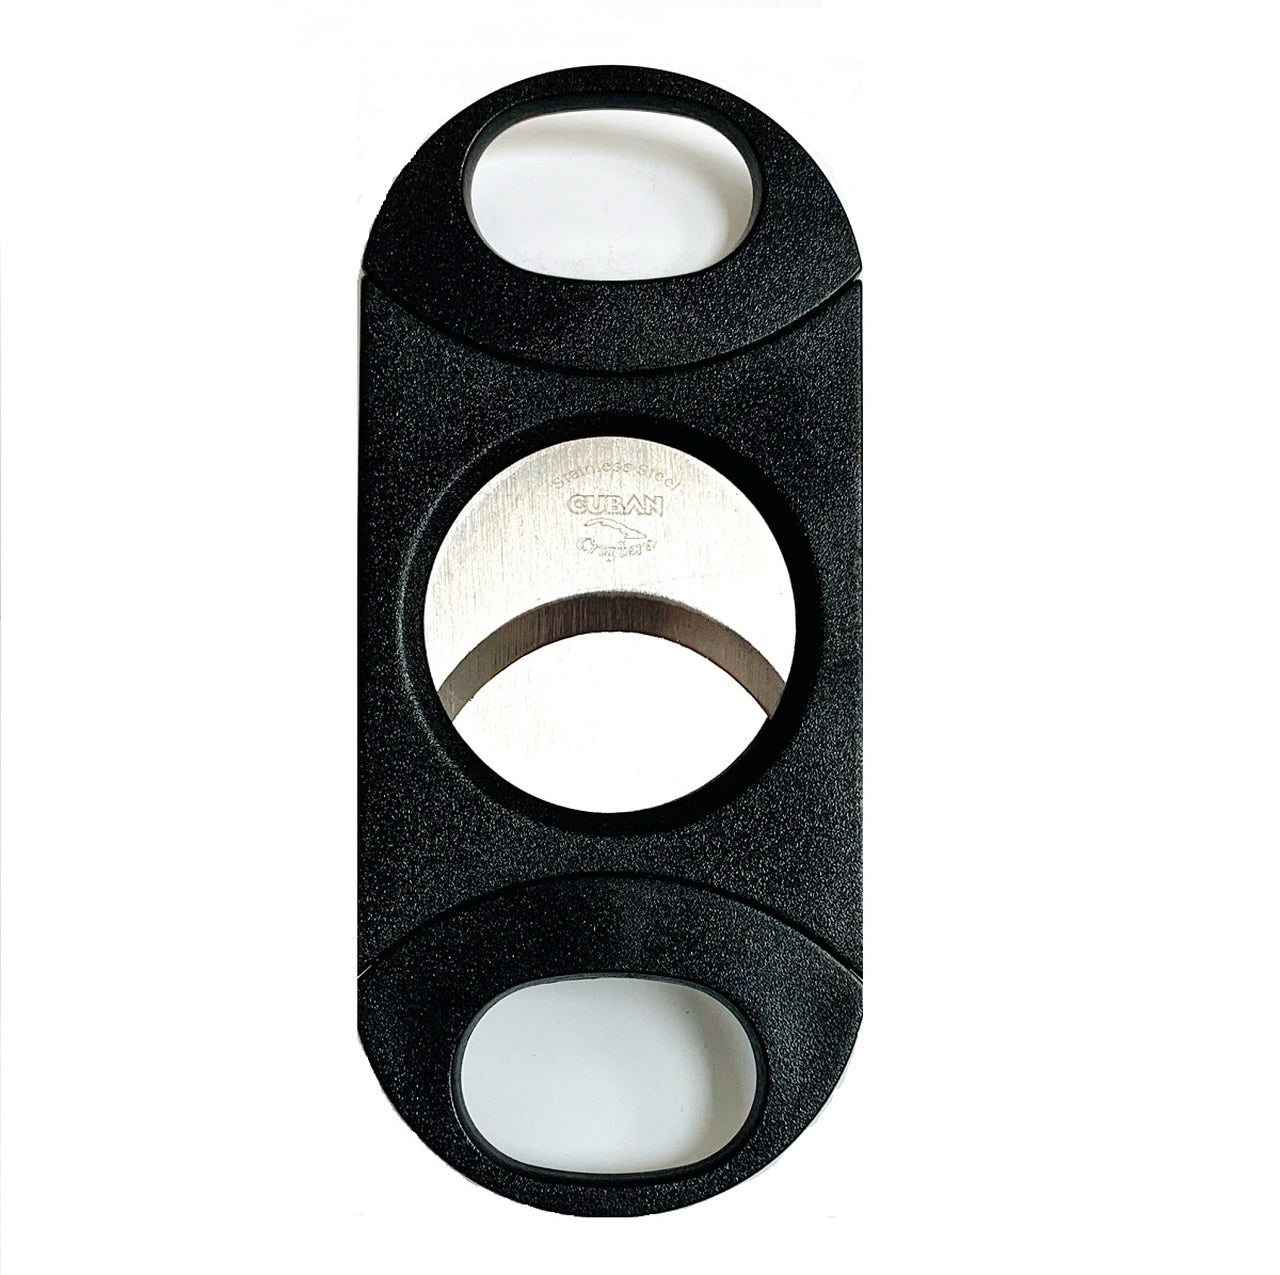 Cuban Crafters Cigar Cutter Up To 80 Ring Gauge - Cigar boulevard